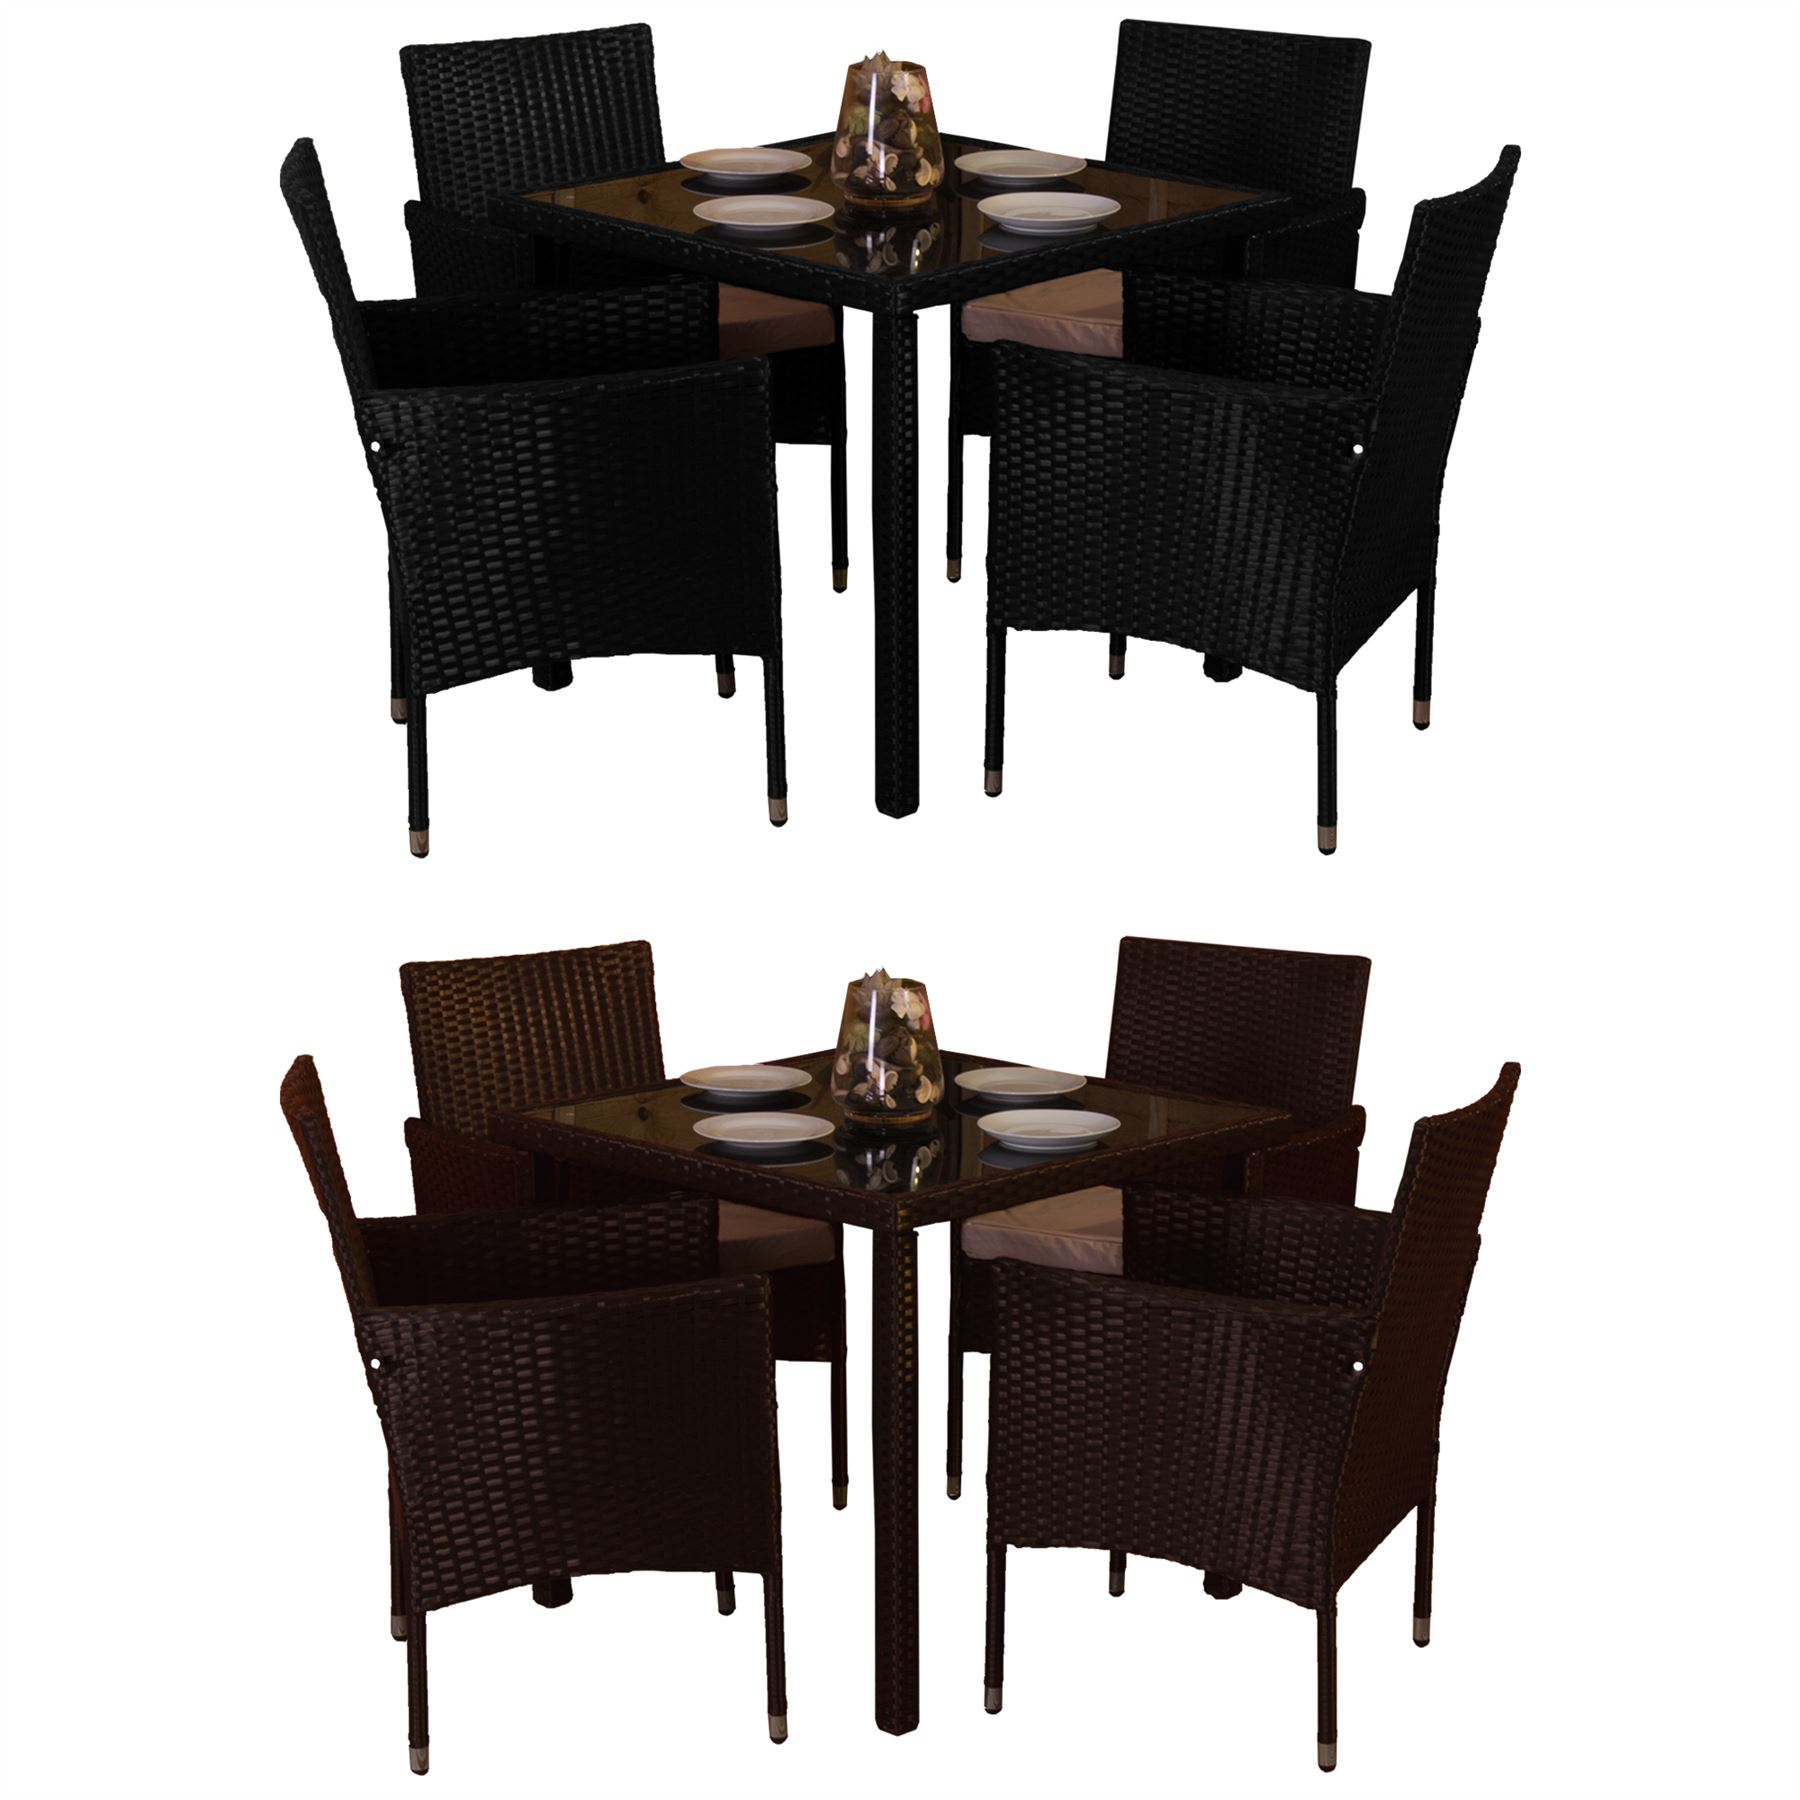 Details about malpas garden rattan furniture 4 seater dining set outdoor table patio ukfr